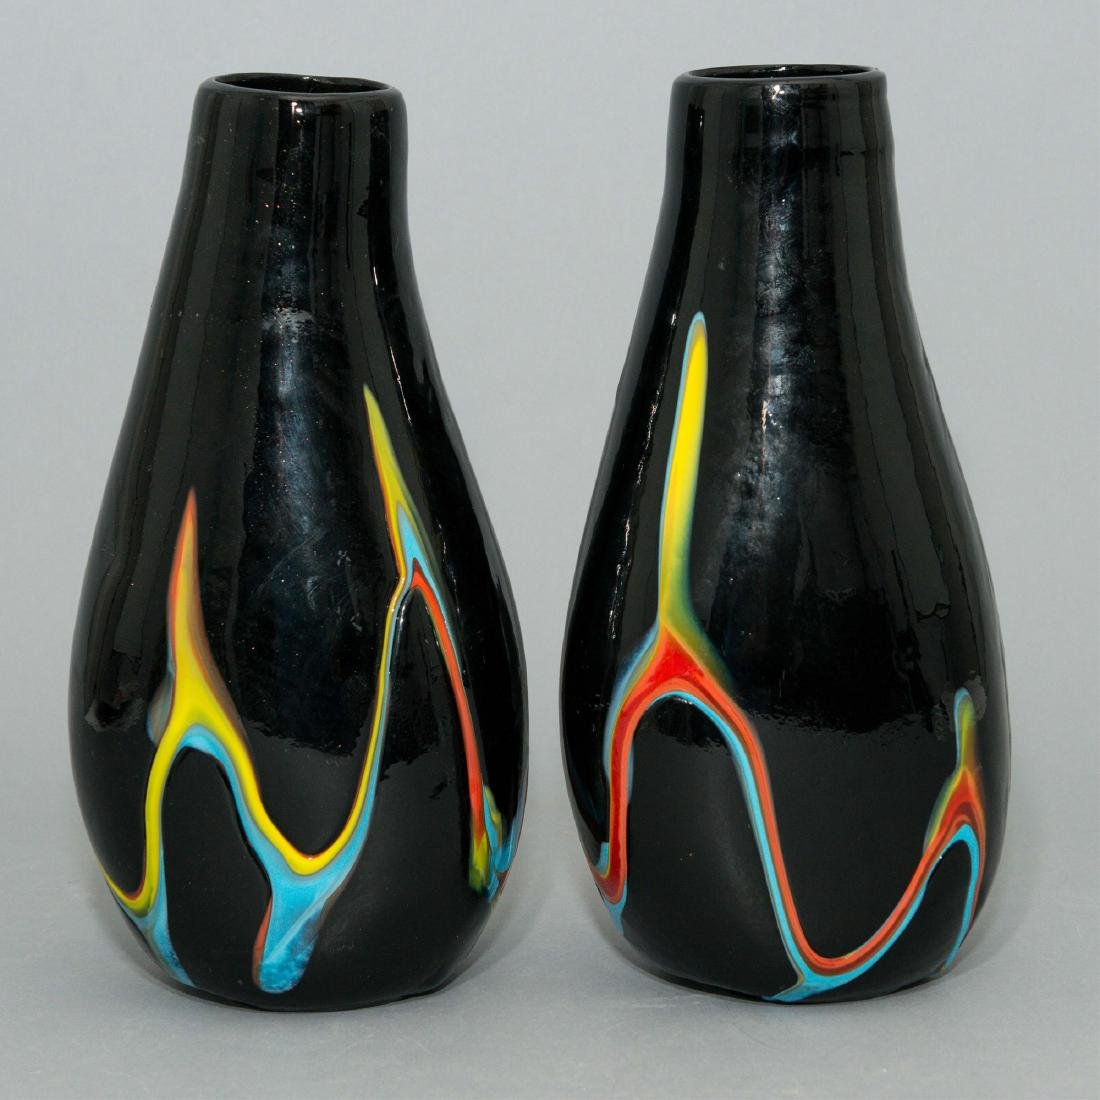 PAIR OF HAND-BLOWN AMERICAN DECORATIVE GLASS VASES